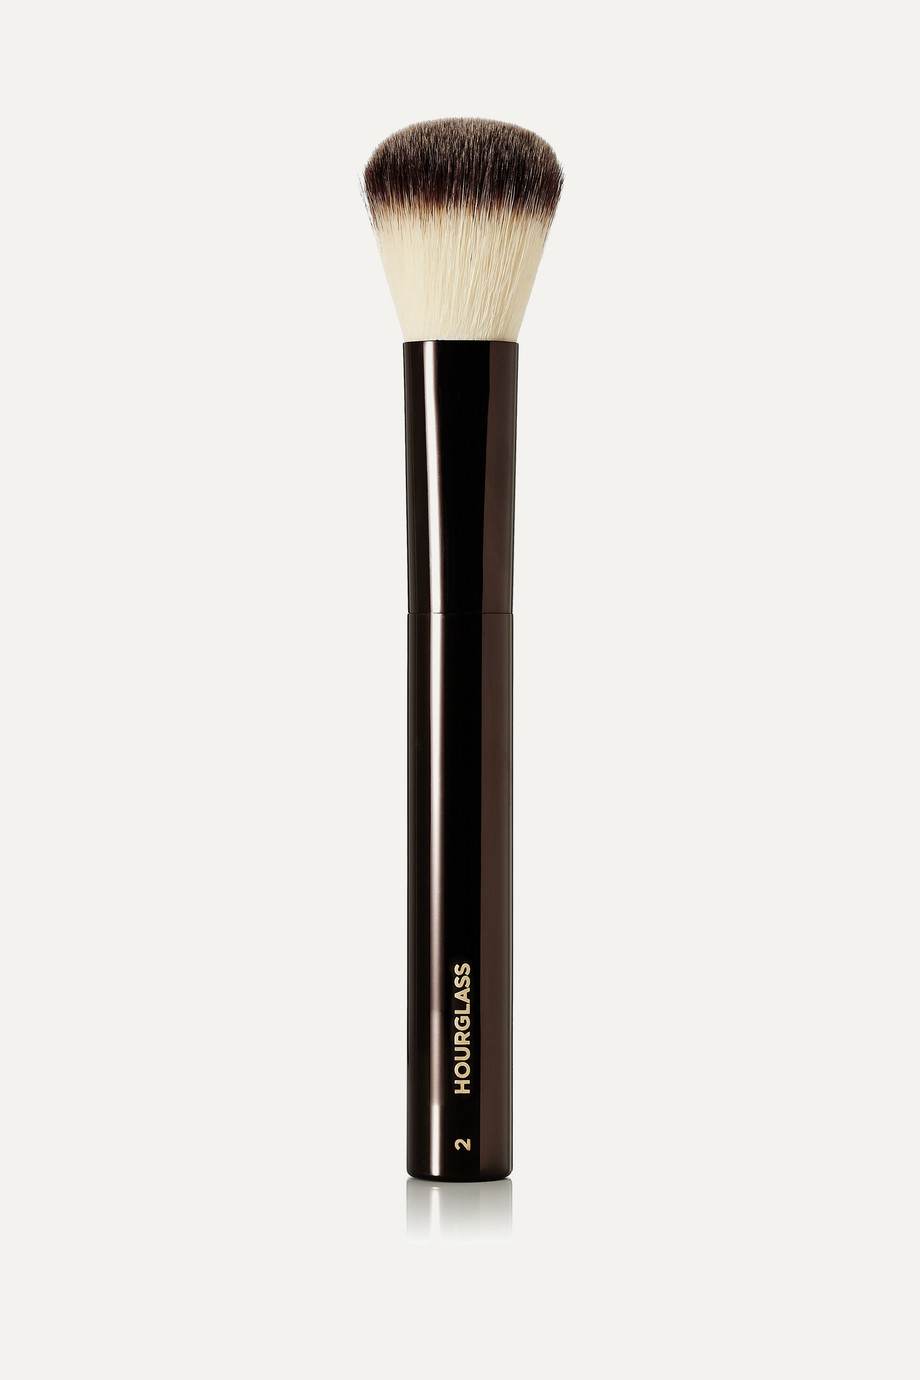 HOURGLASS Nº 2 Blush/Foundation Brush